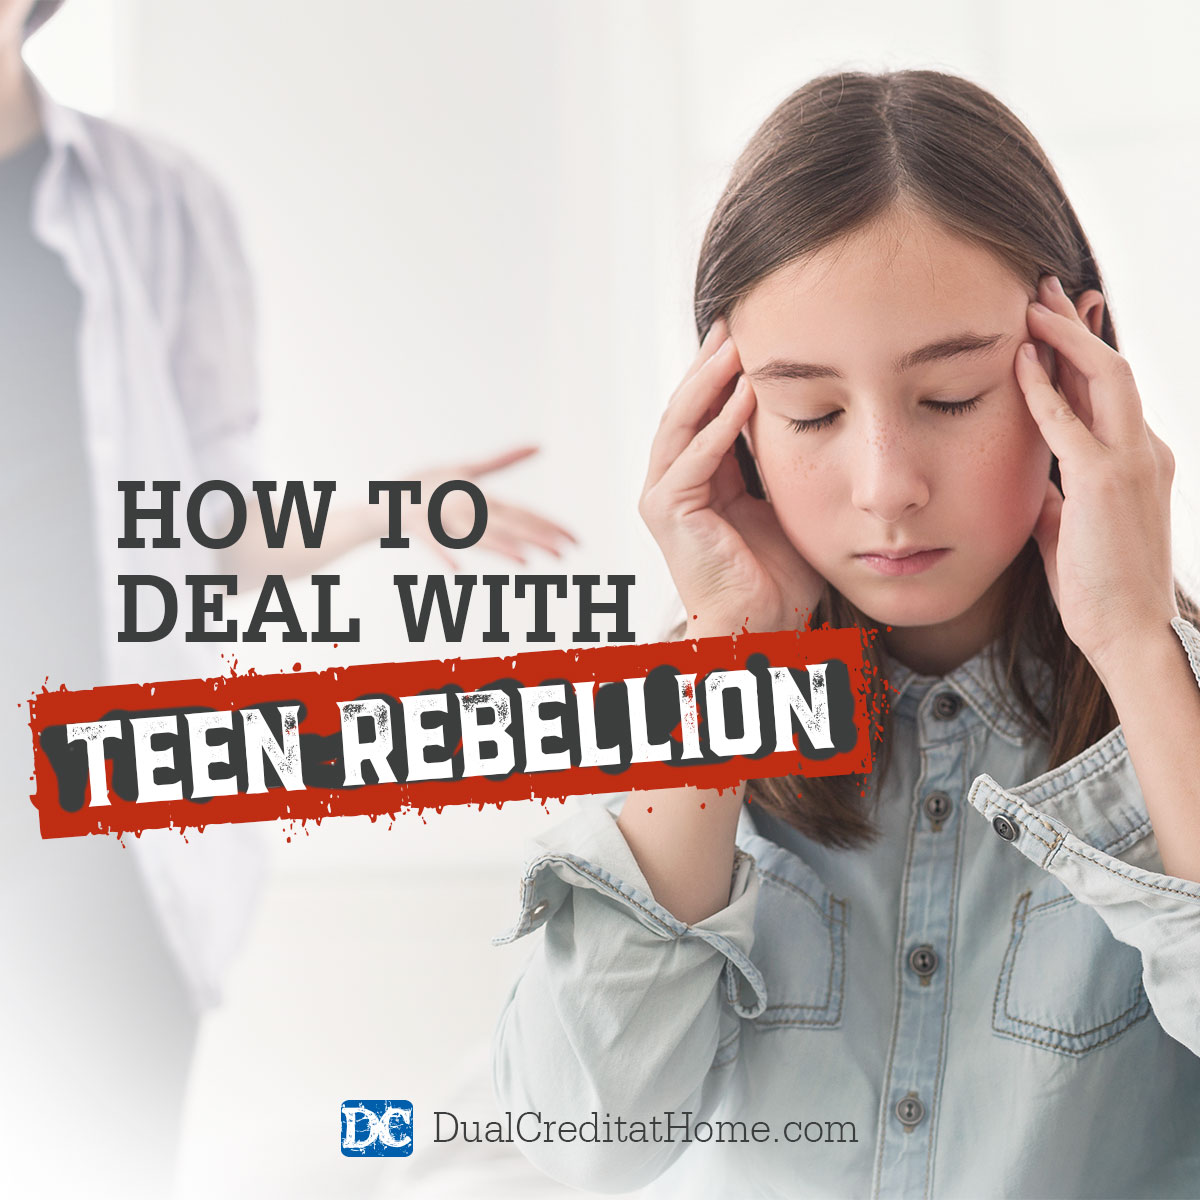 How to Deal with Teen Rebellion